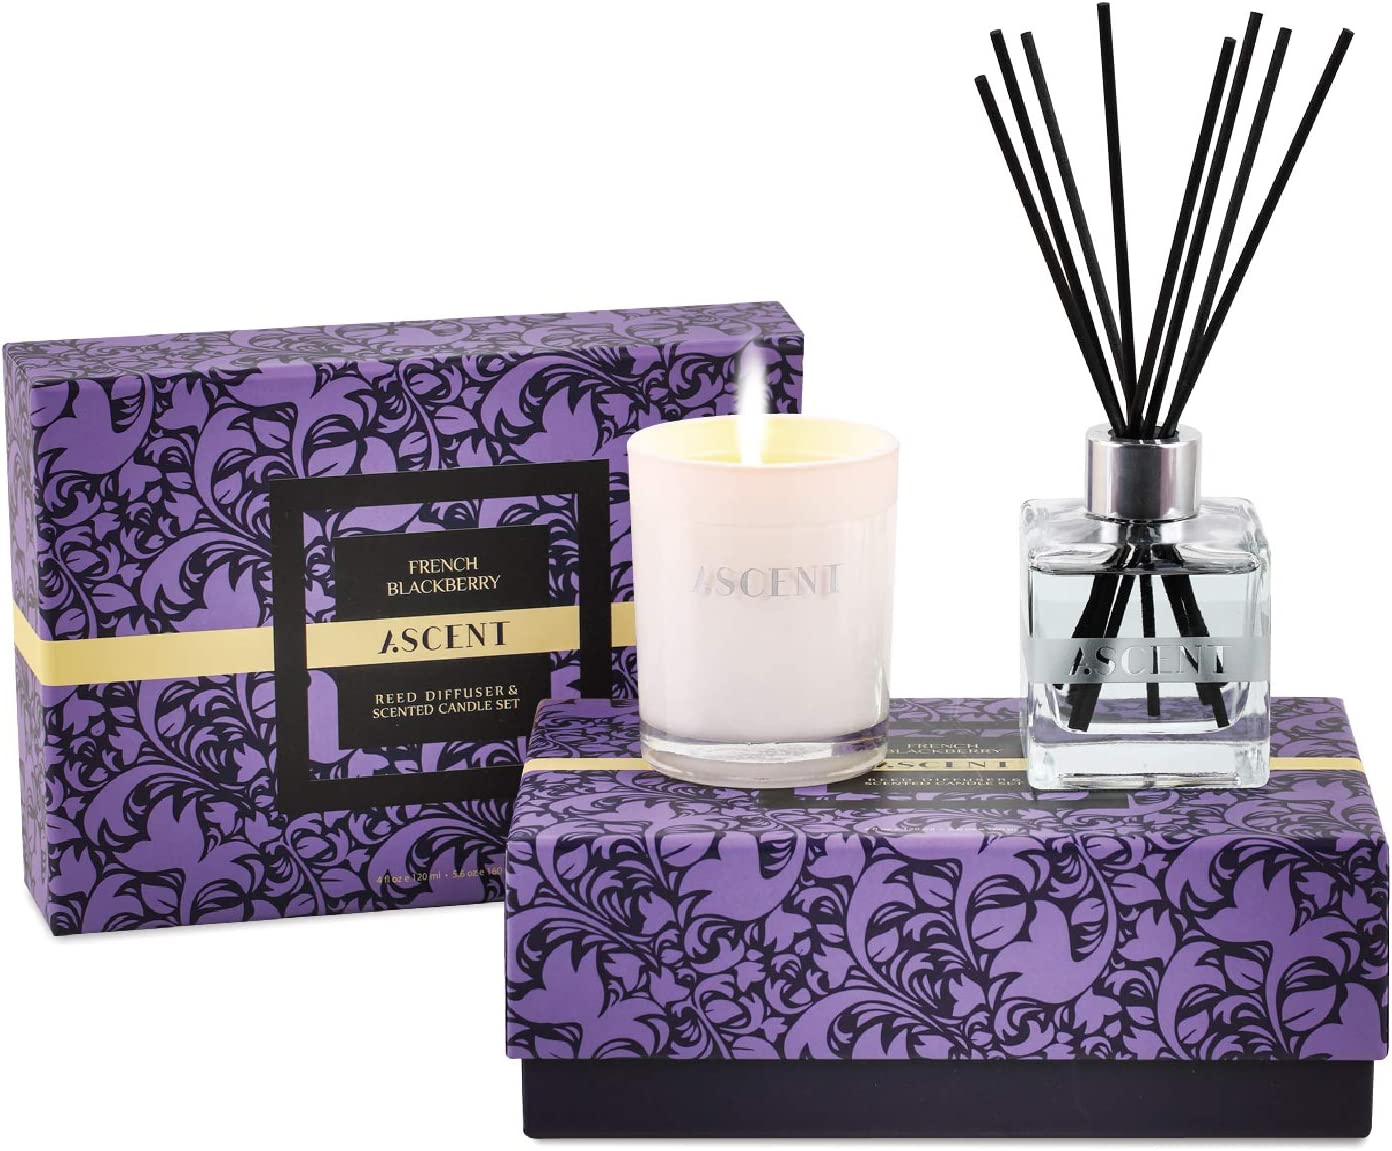 Reed Diffuser Set & Scented Candle French BlackBerry   Essential Oil Reed Diffuser   Room Fragrance Reed Diffuser Gift Set in Luxury Box   Large Reed Diffuser with Scent Sticks 4fl.oz   Candle 5oz